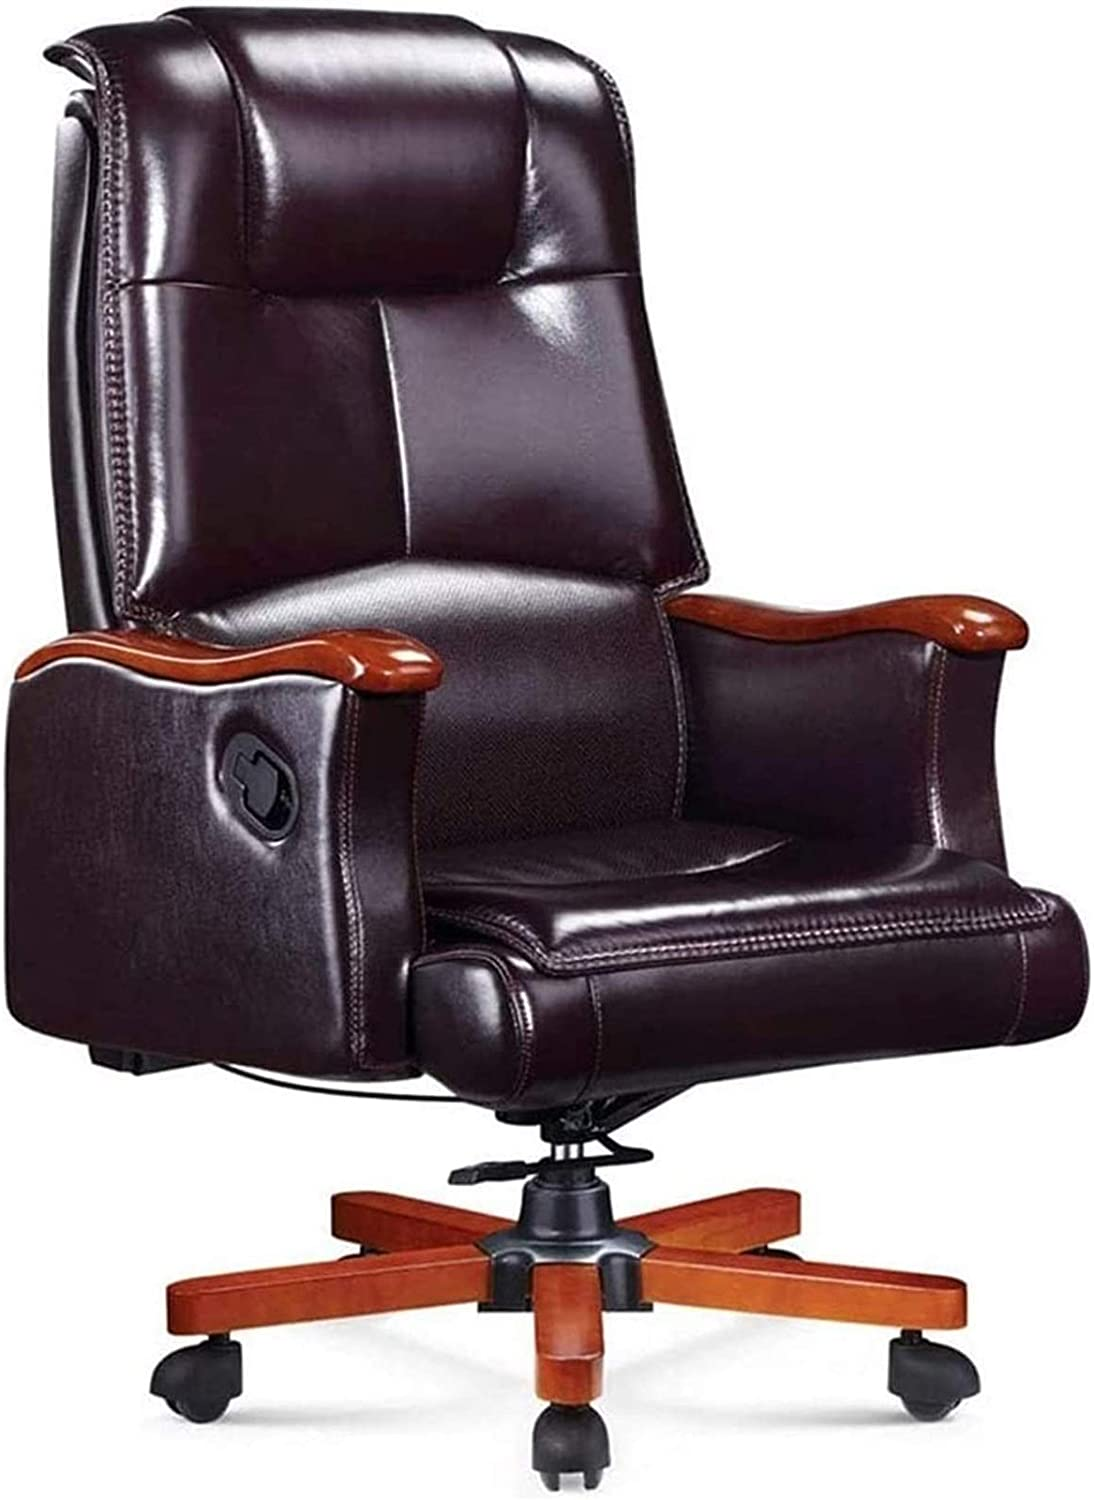 Boss Office Chair Reclining Chairs online shop Room Max 88% OFF Living Armchairs Reclini